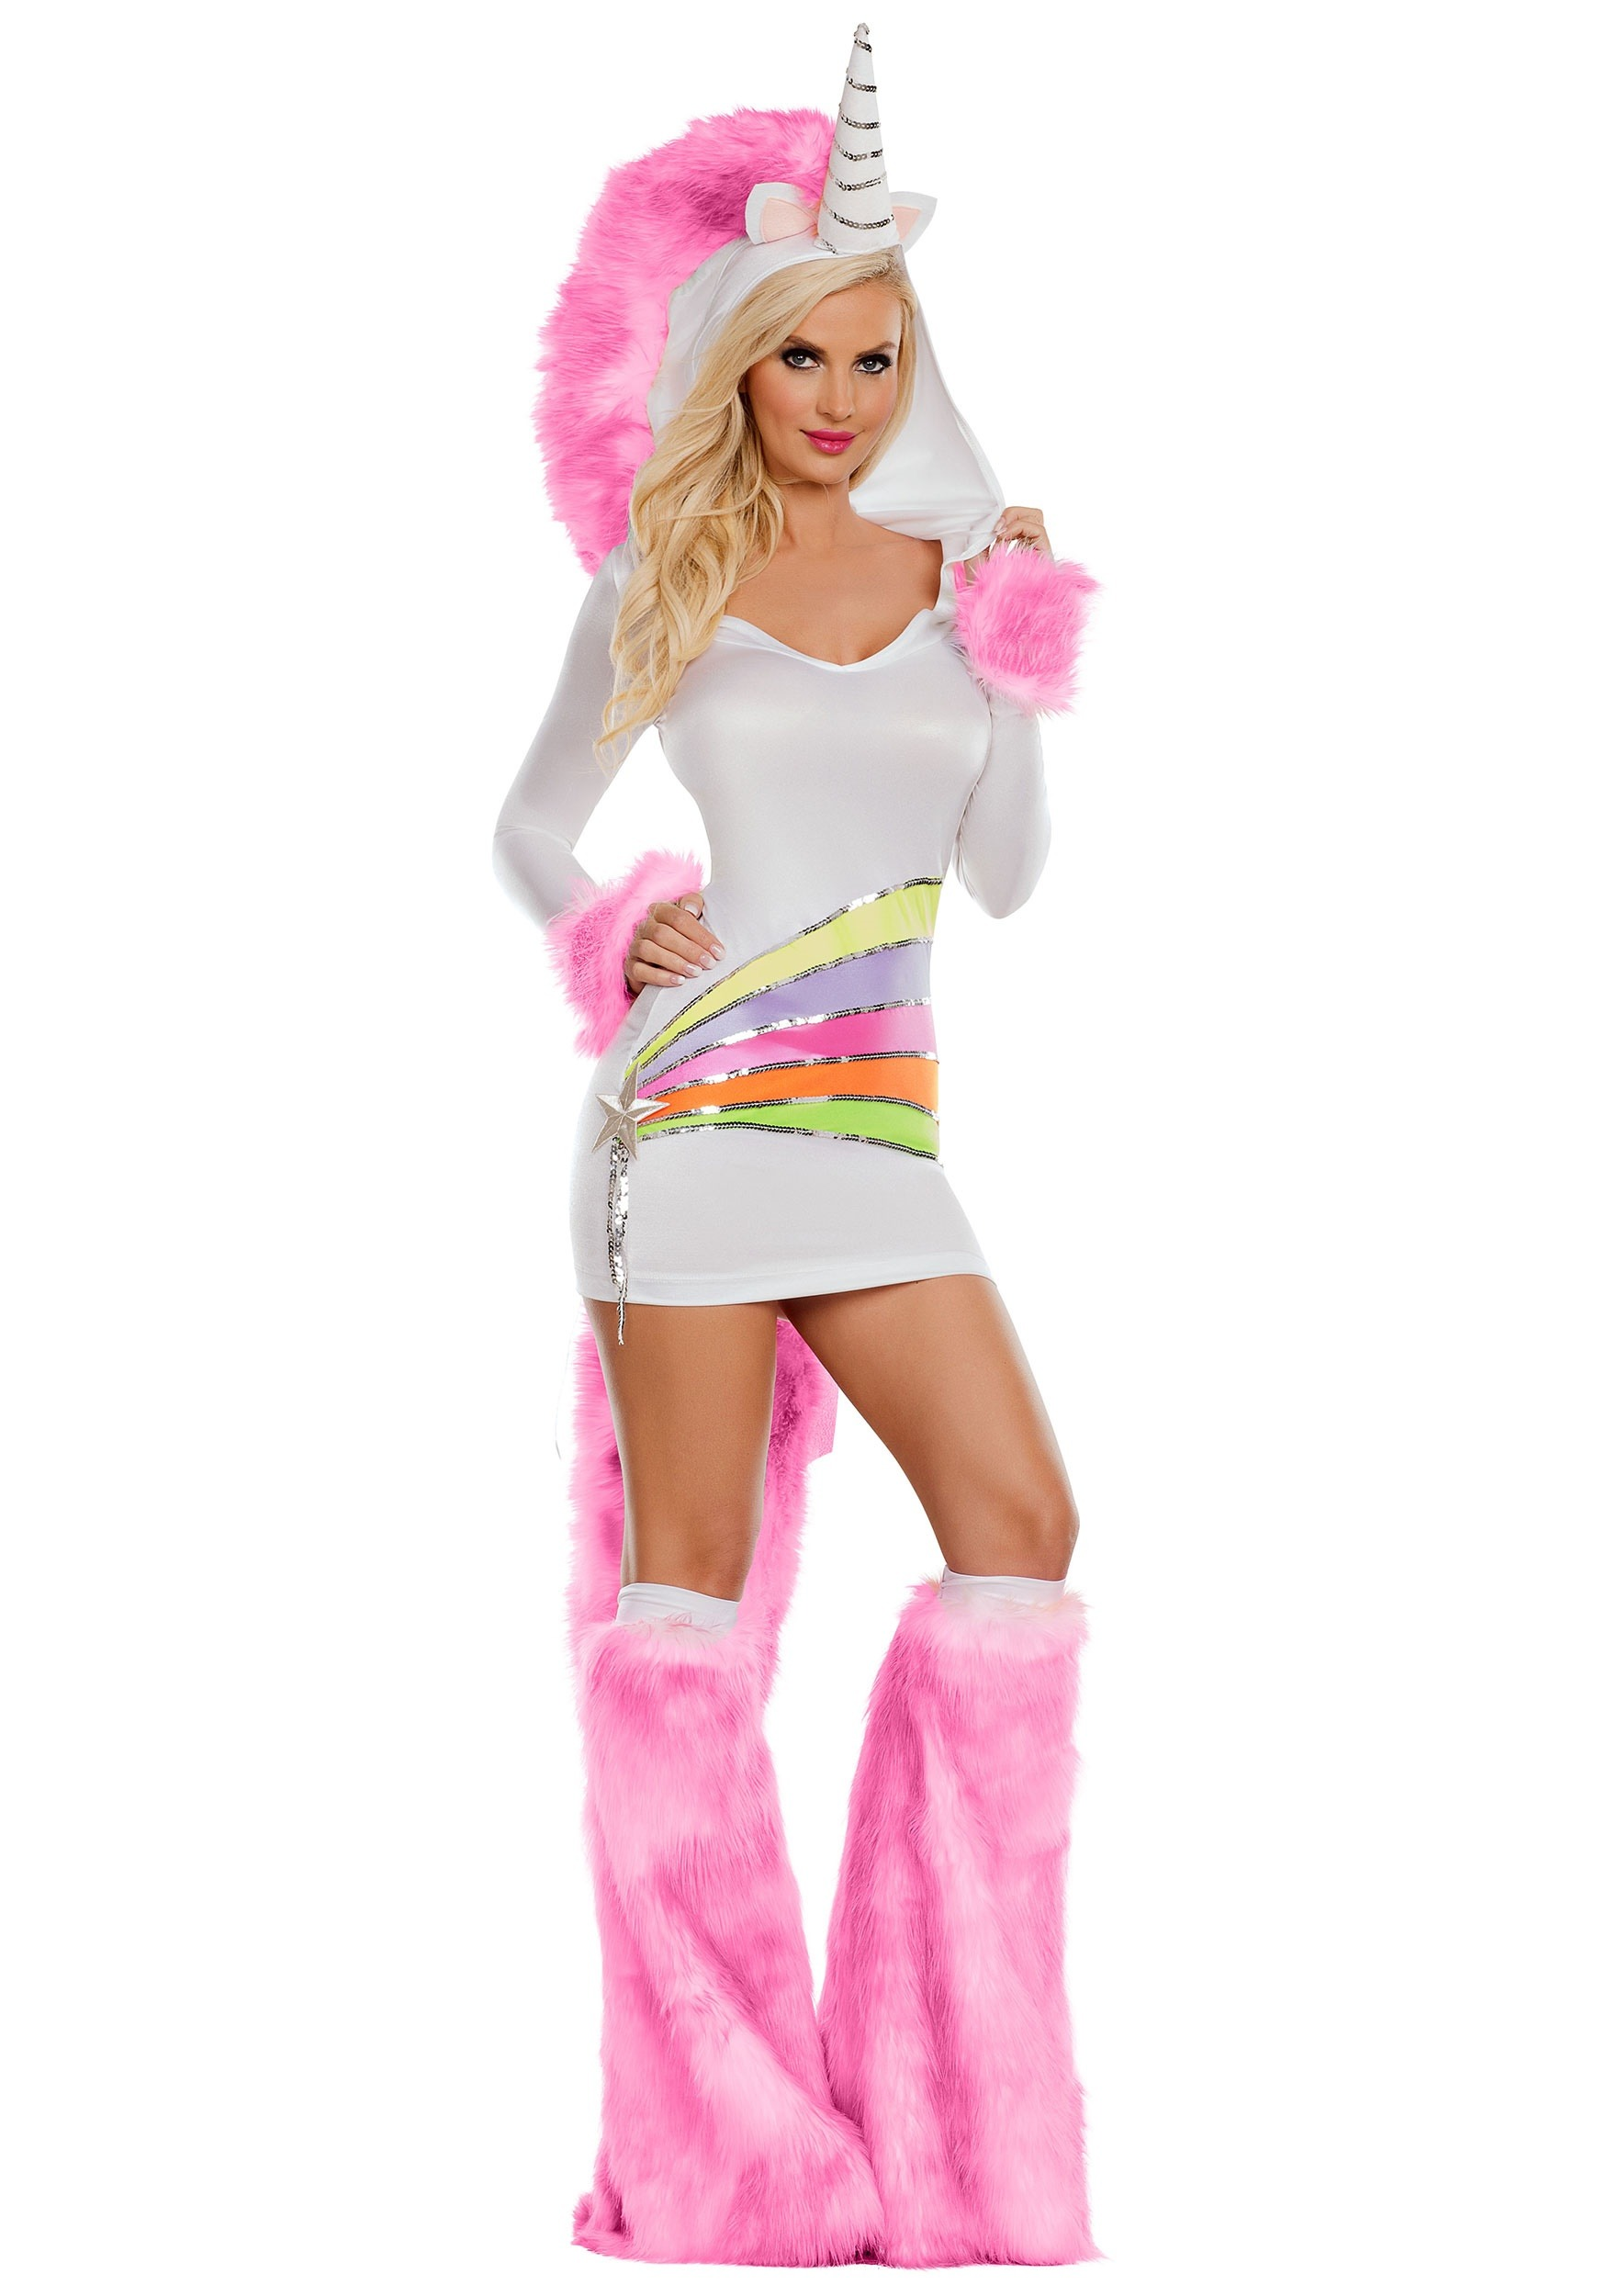 INOpets.com Anything for Pets Parents & Their Pets Rainbow Unicorn Women's Fancy Dress Costume